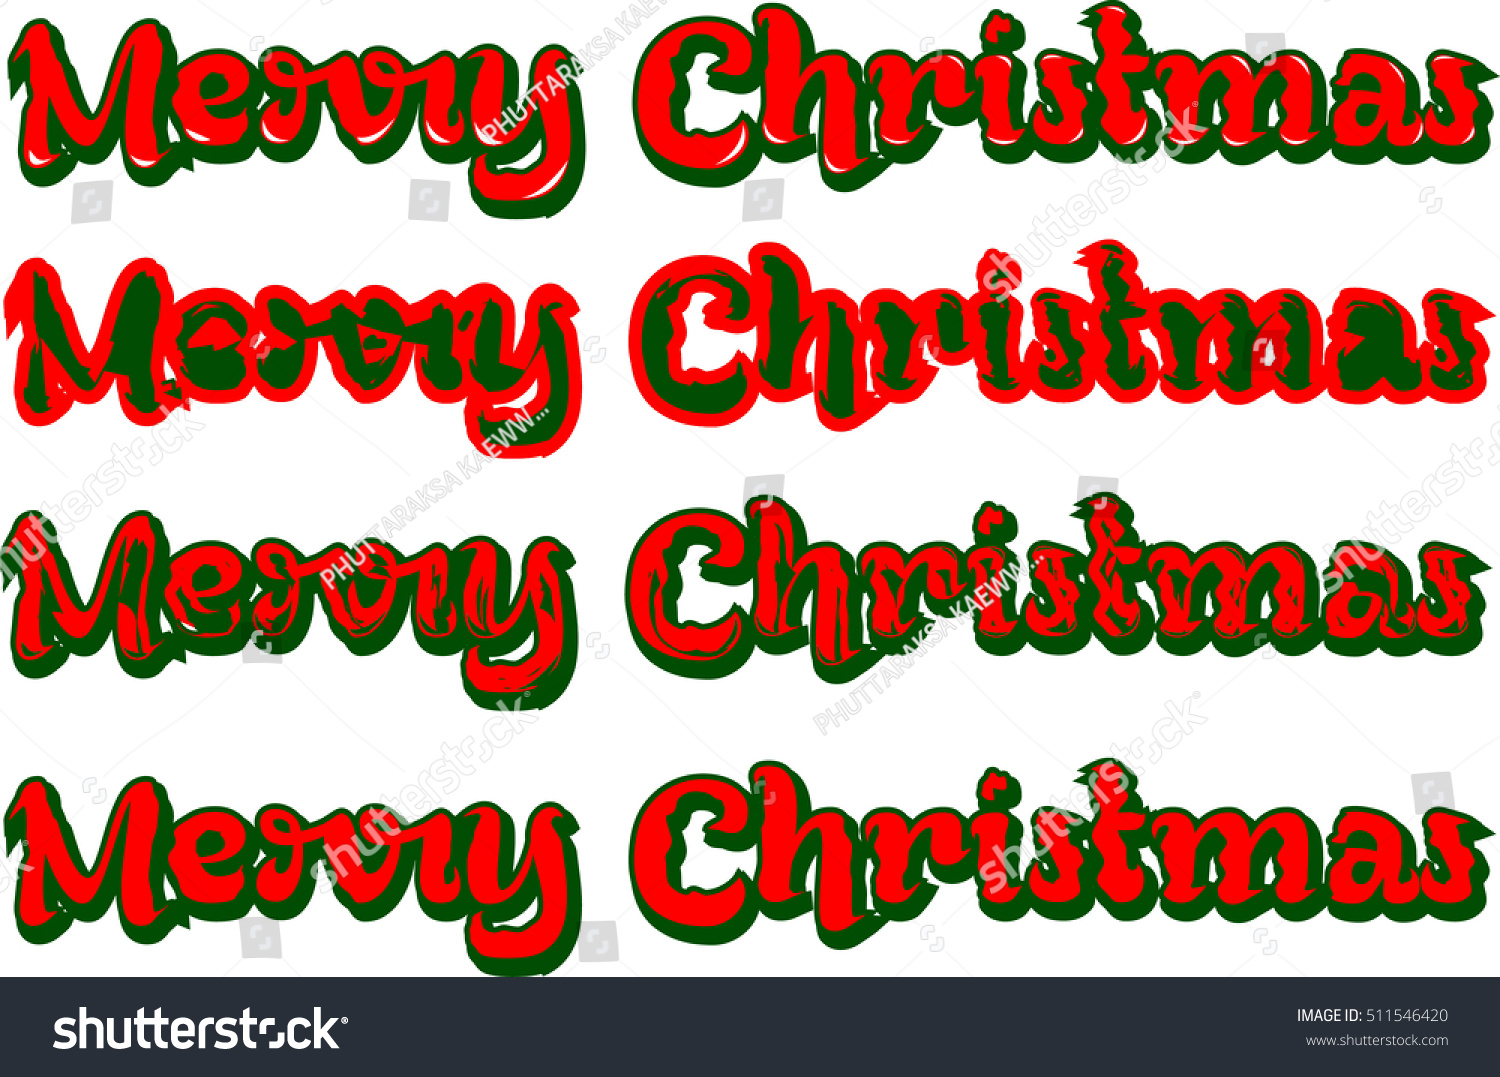 Merry Christmas Word Art Design The Arts Abstract Stock Image